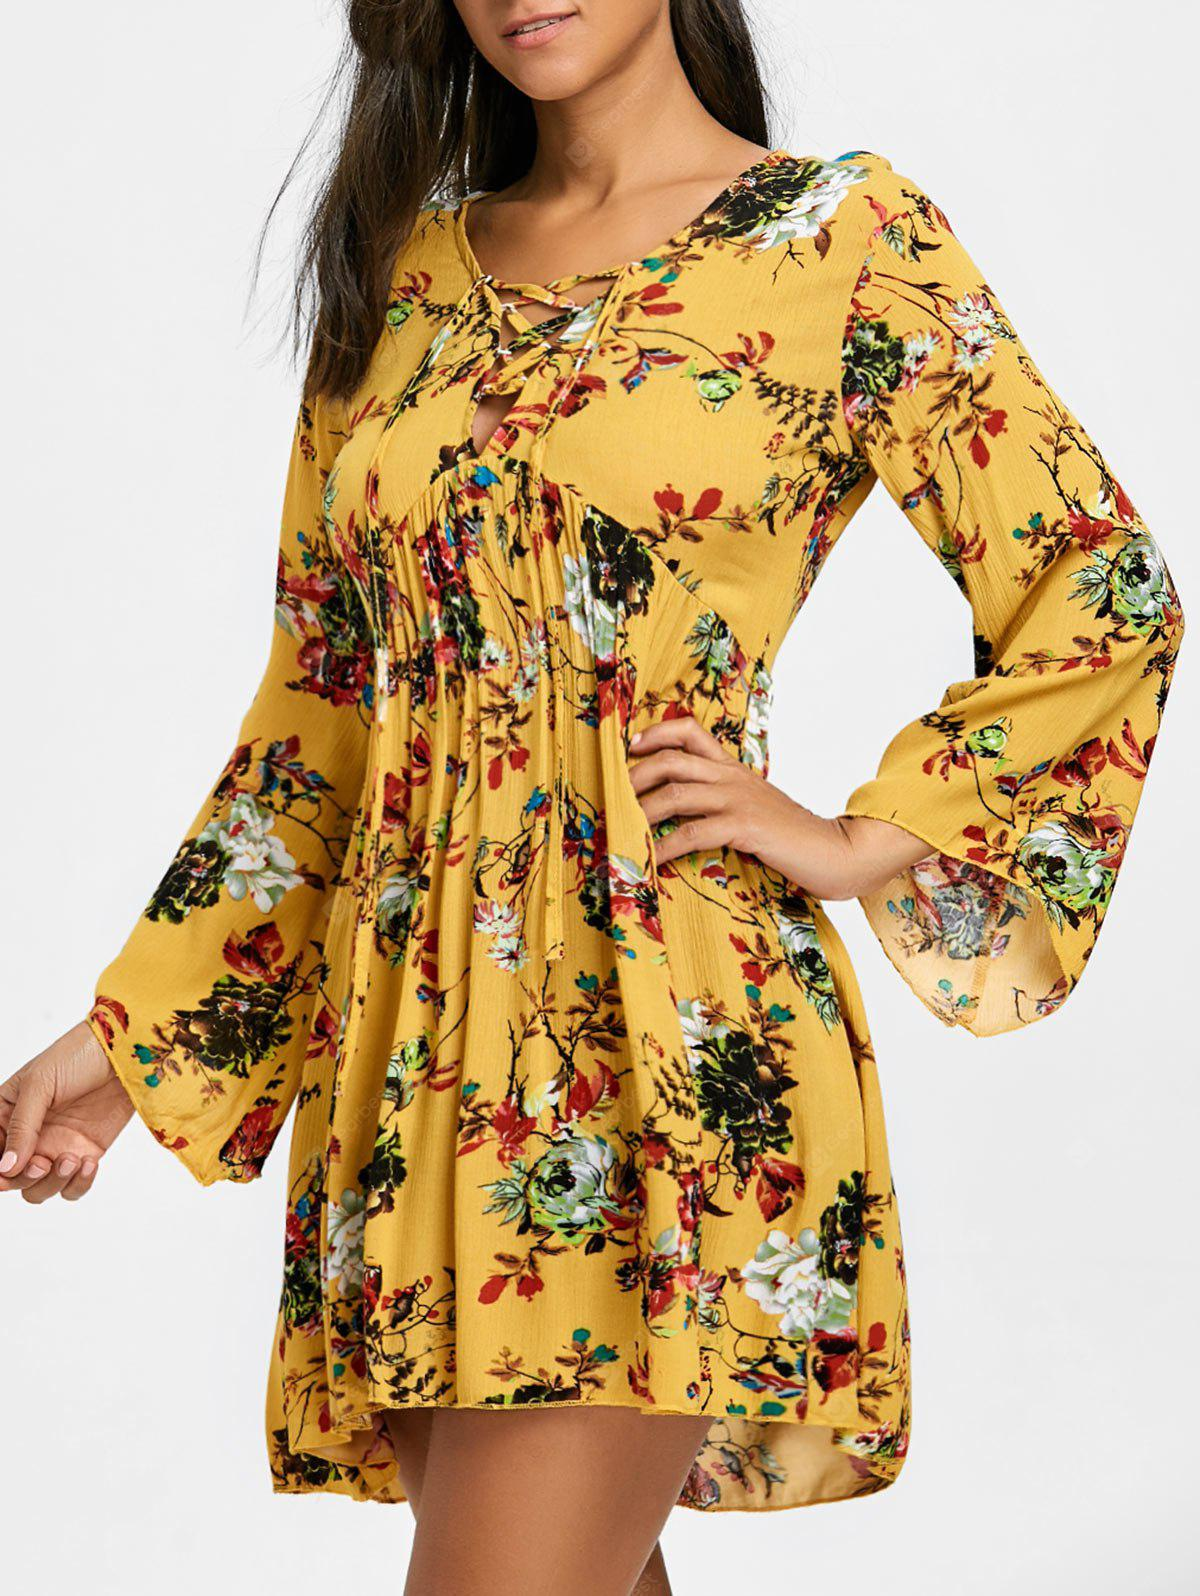 Lace Up Floral Print Empire Waist Mini Dress